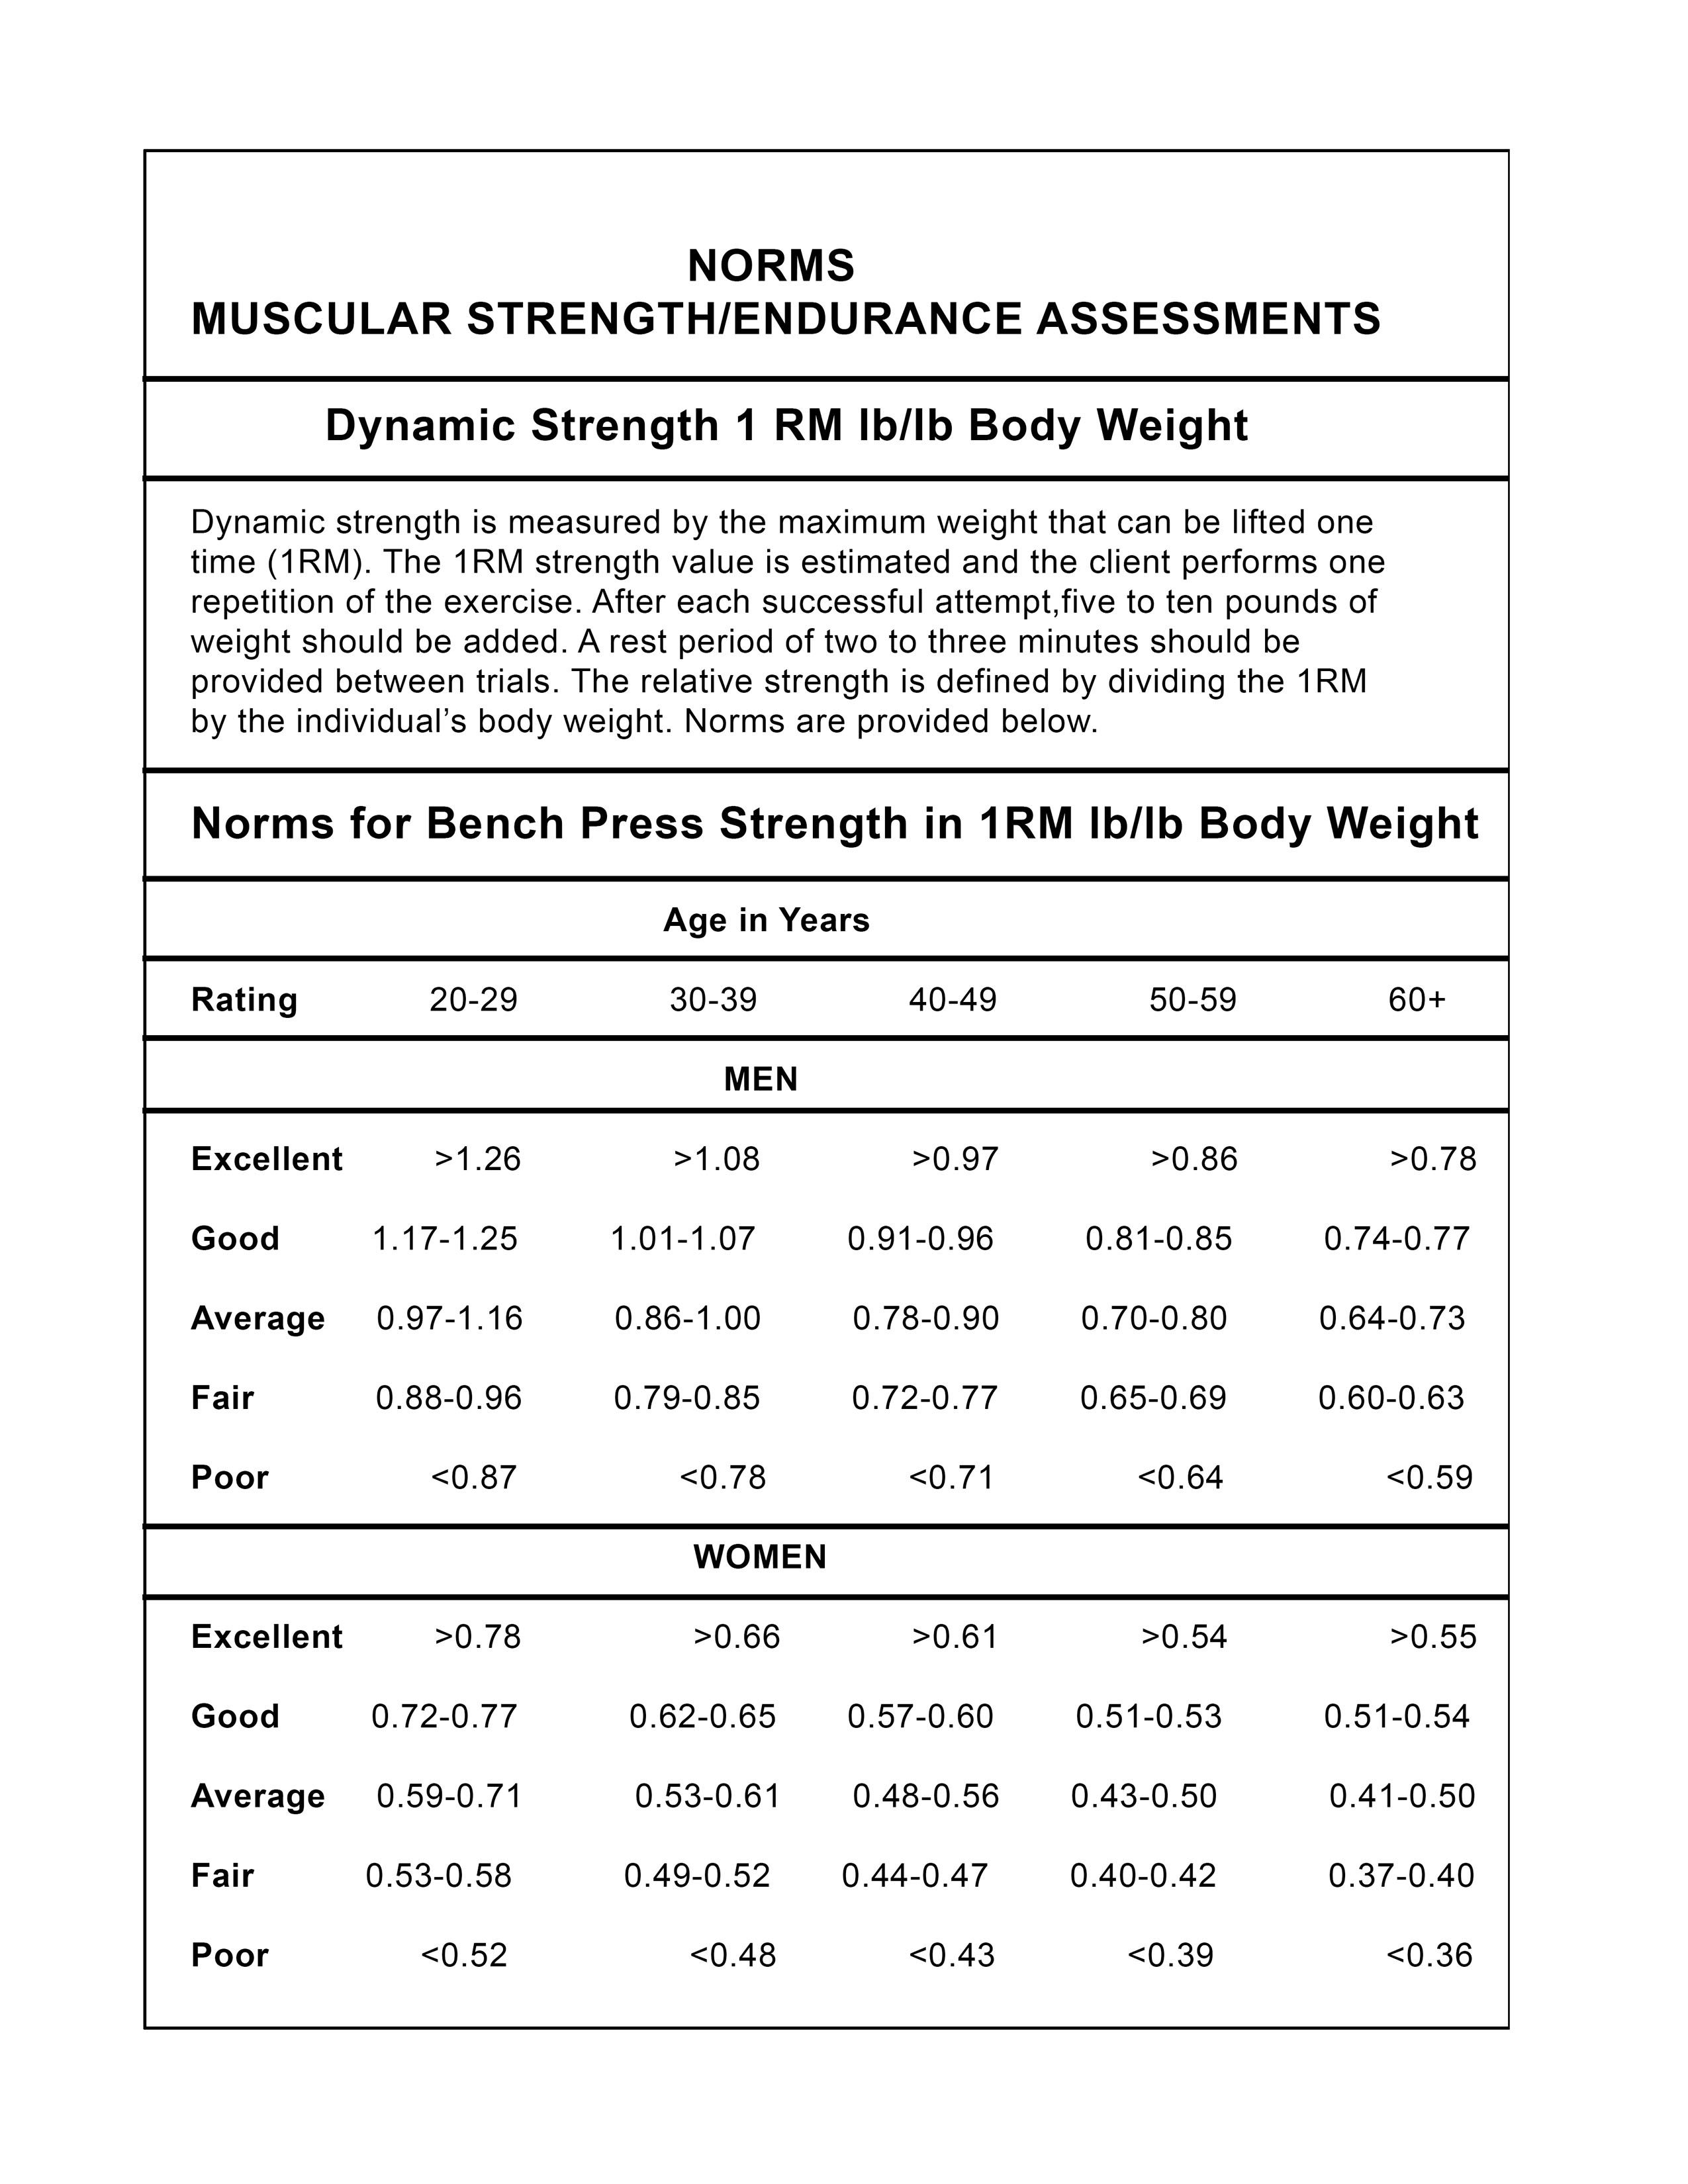 Muscle Strength And Endurance Assessment Chart Assessment Muscle Bench Press